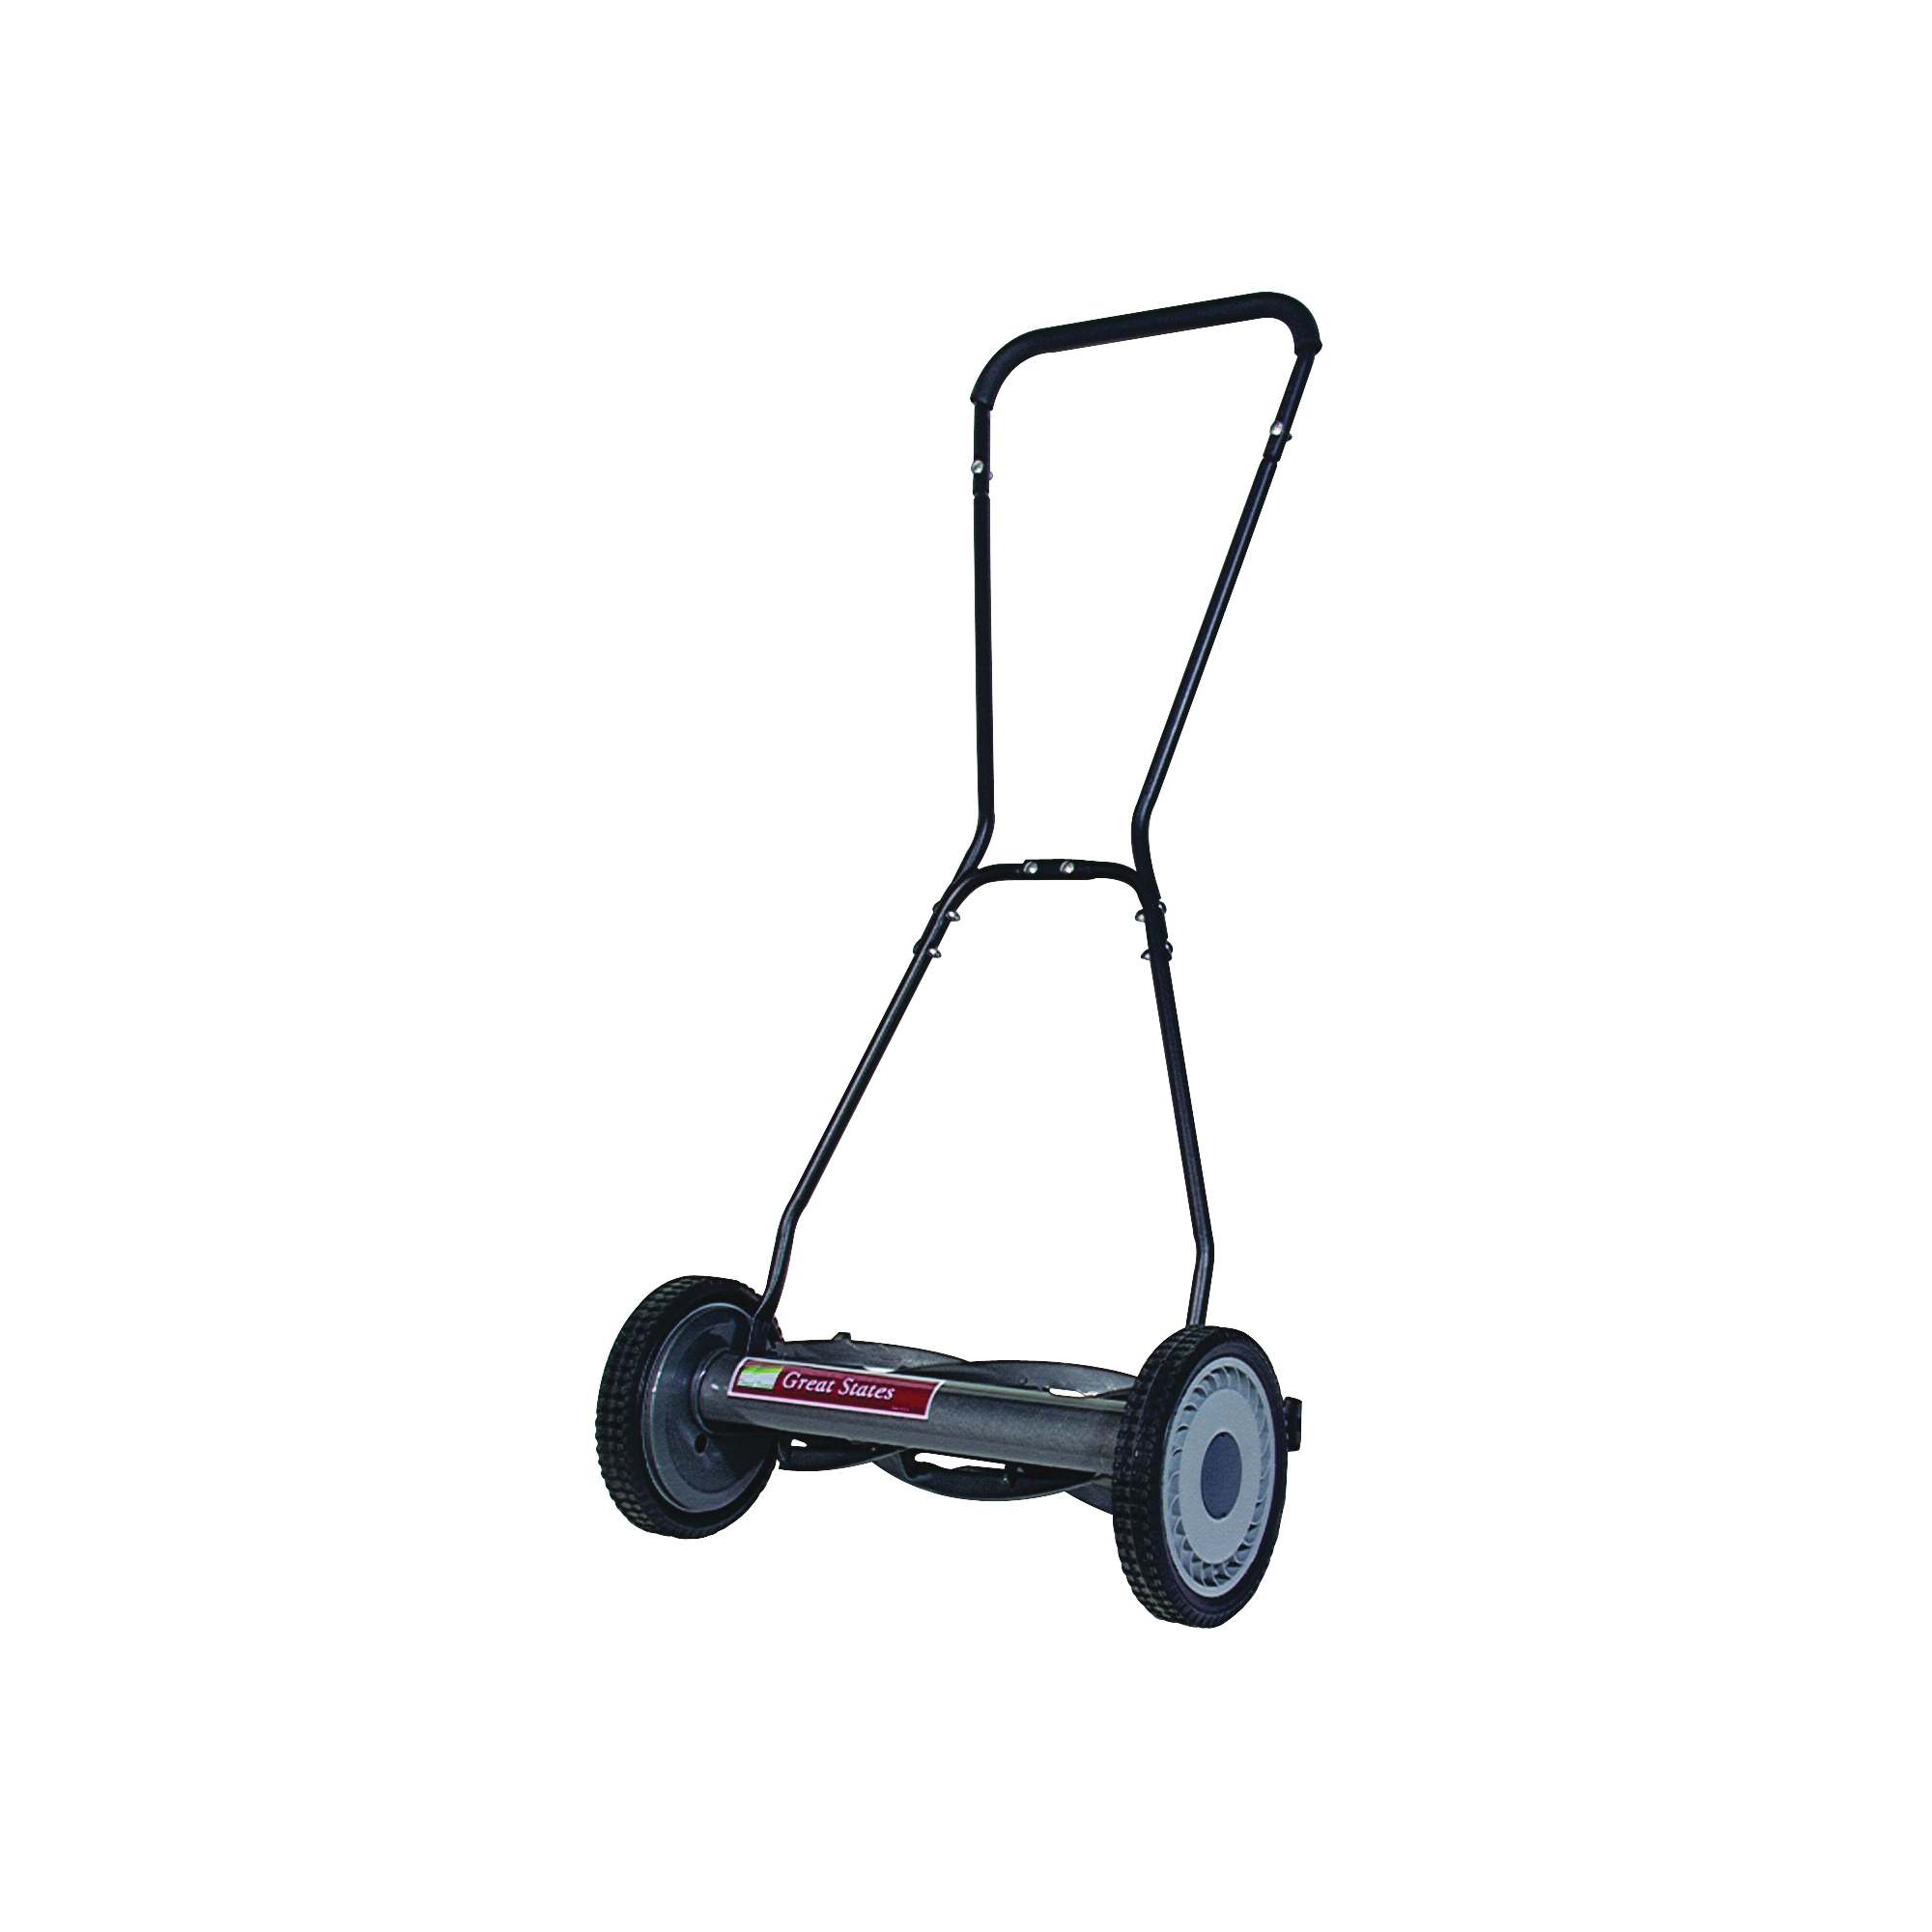 Picture of GREAT STATES 815-18 Reel Lawn Mower, 18 in W Cutting, 5 -Blade, Smooth Blade, Foam-Grip Handle